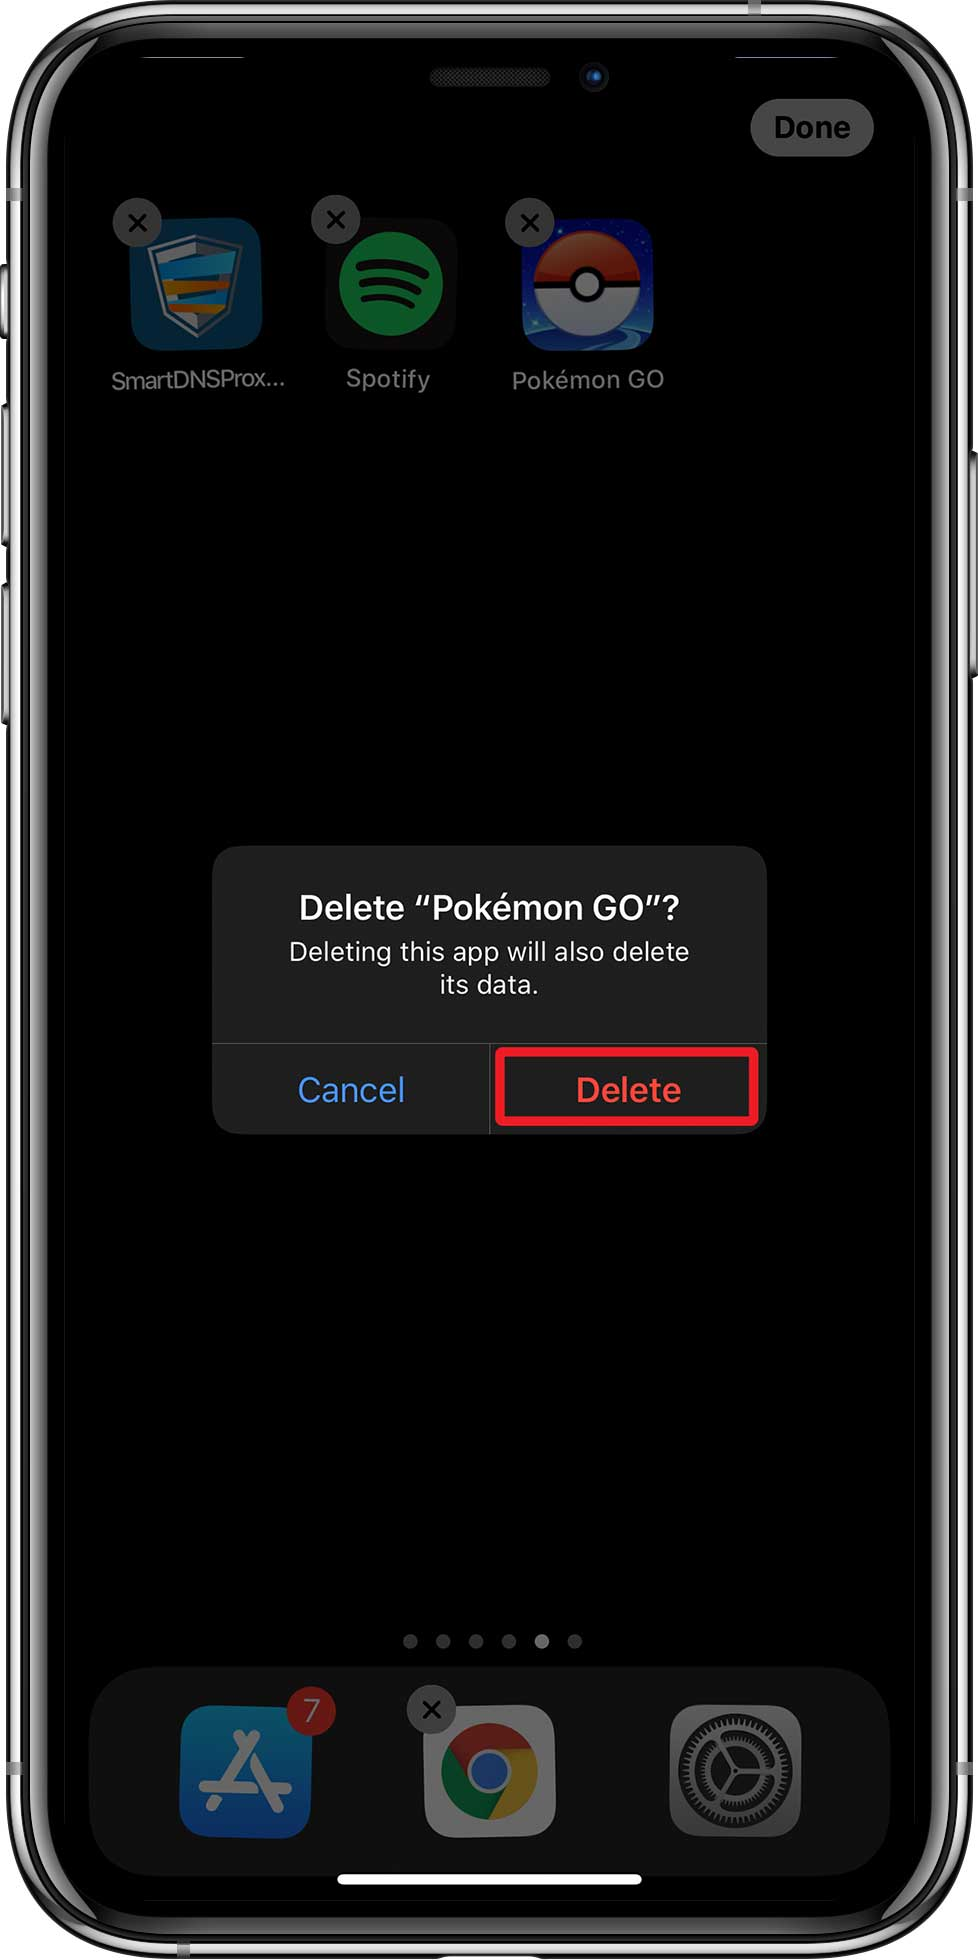 delete the Pokemon Go app from your iPhone.